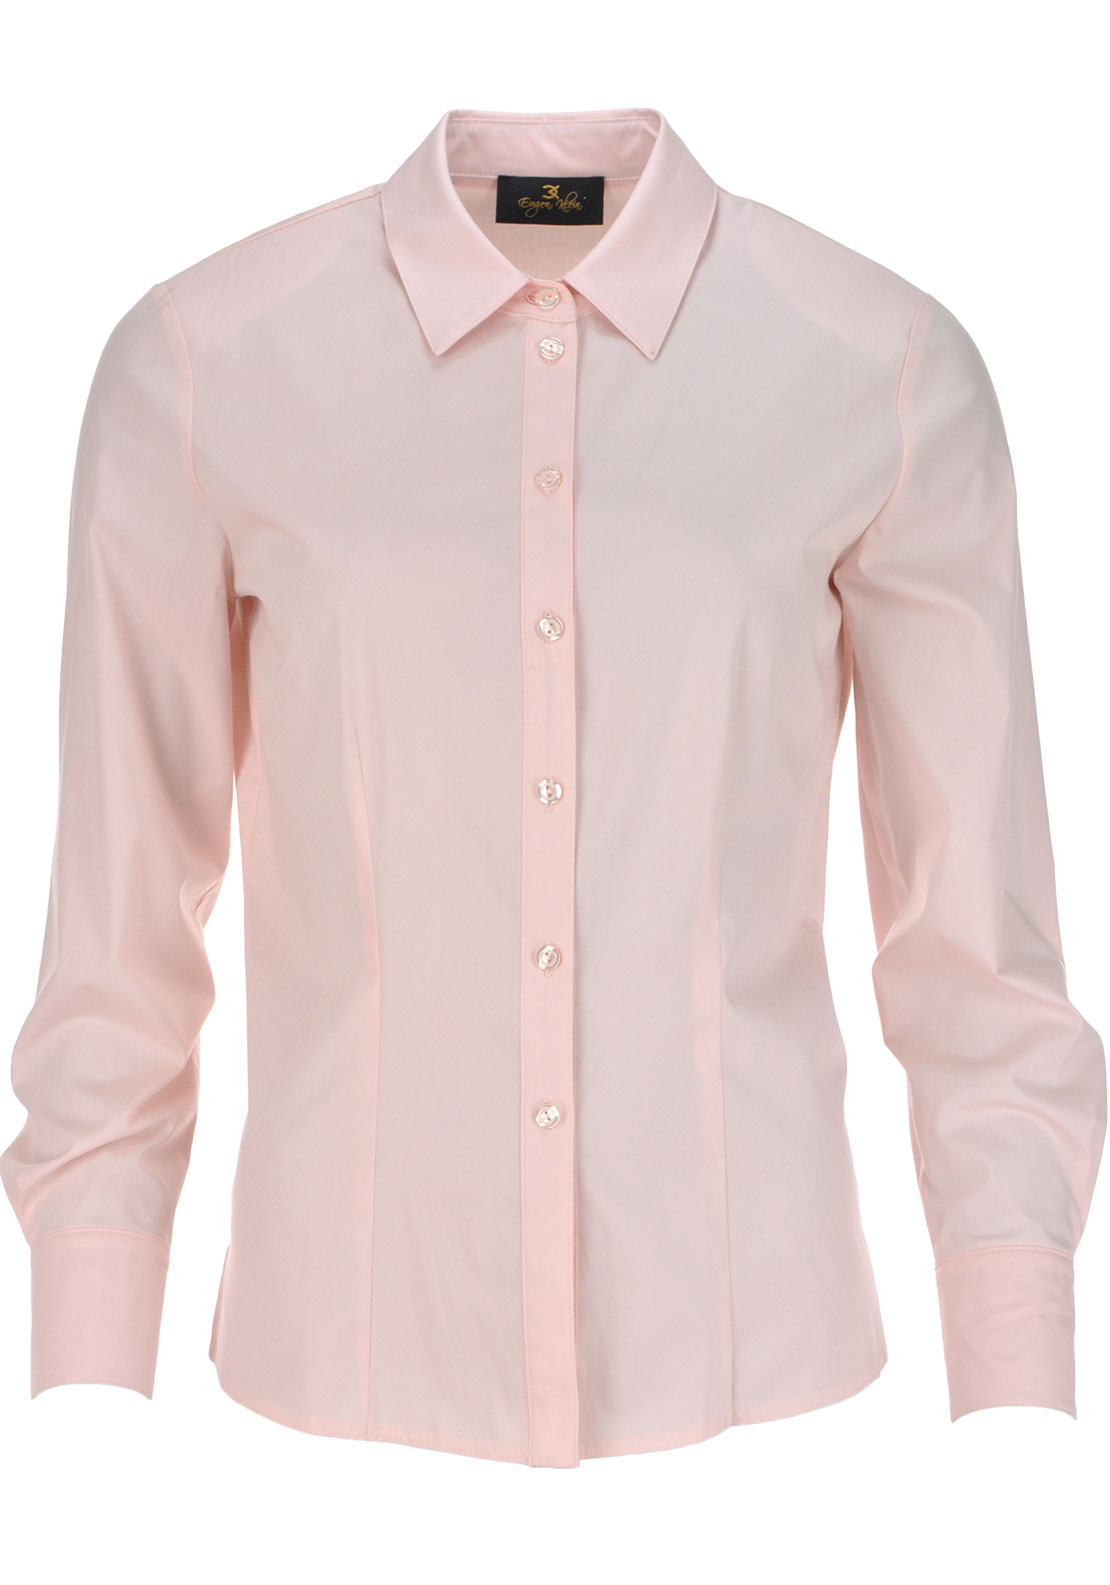 Eugen Klein Classic Long Sleeve Blouse, Pink